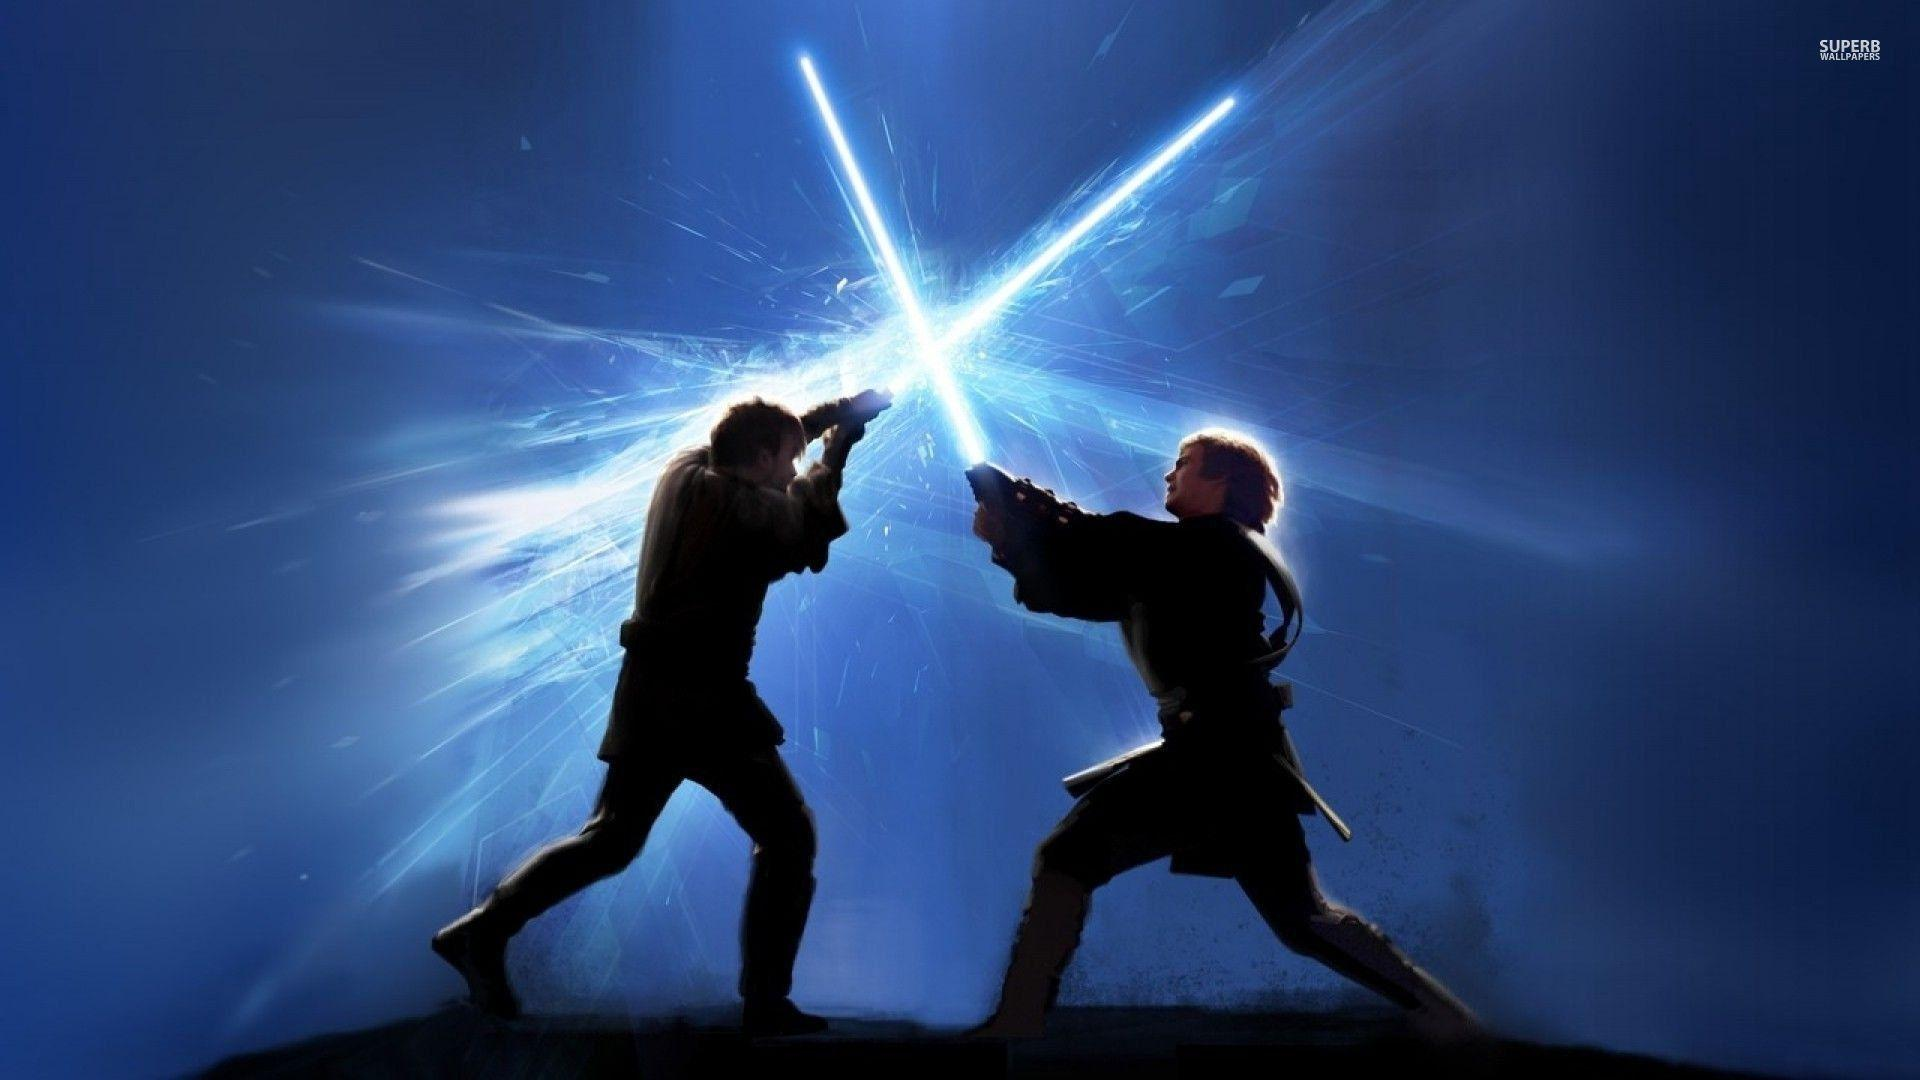 Star Wars Lightsaber Duel Wallpapers Wallpaper Cave